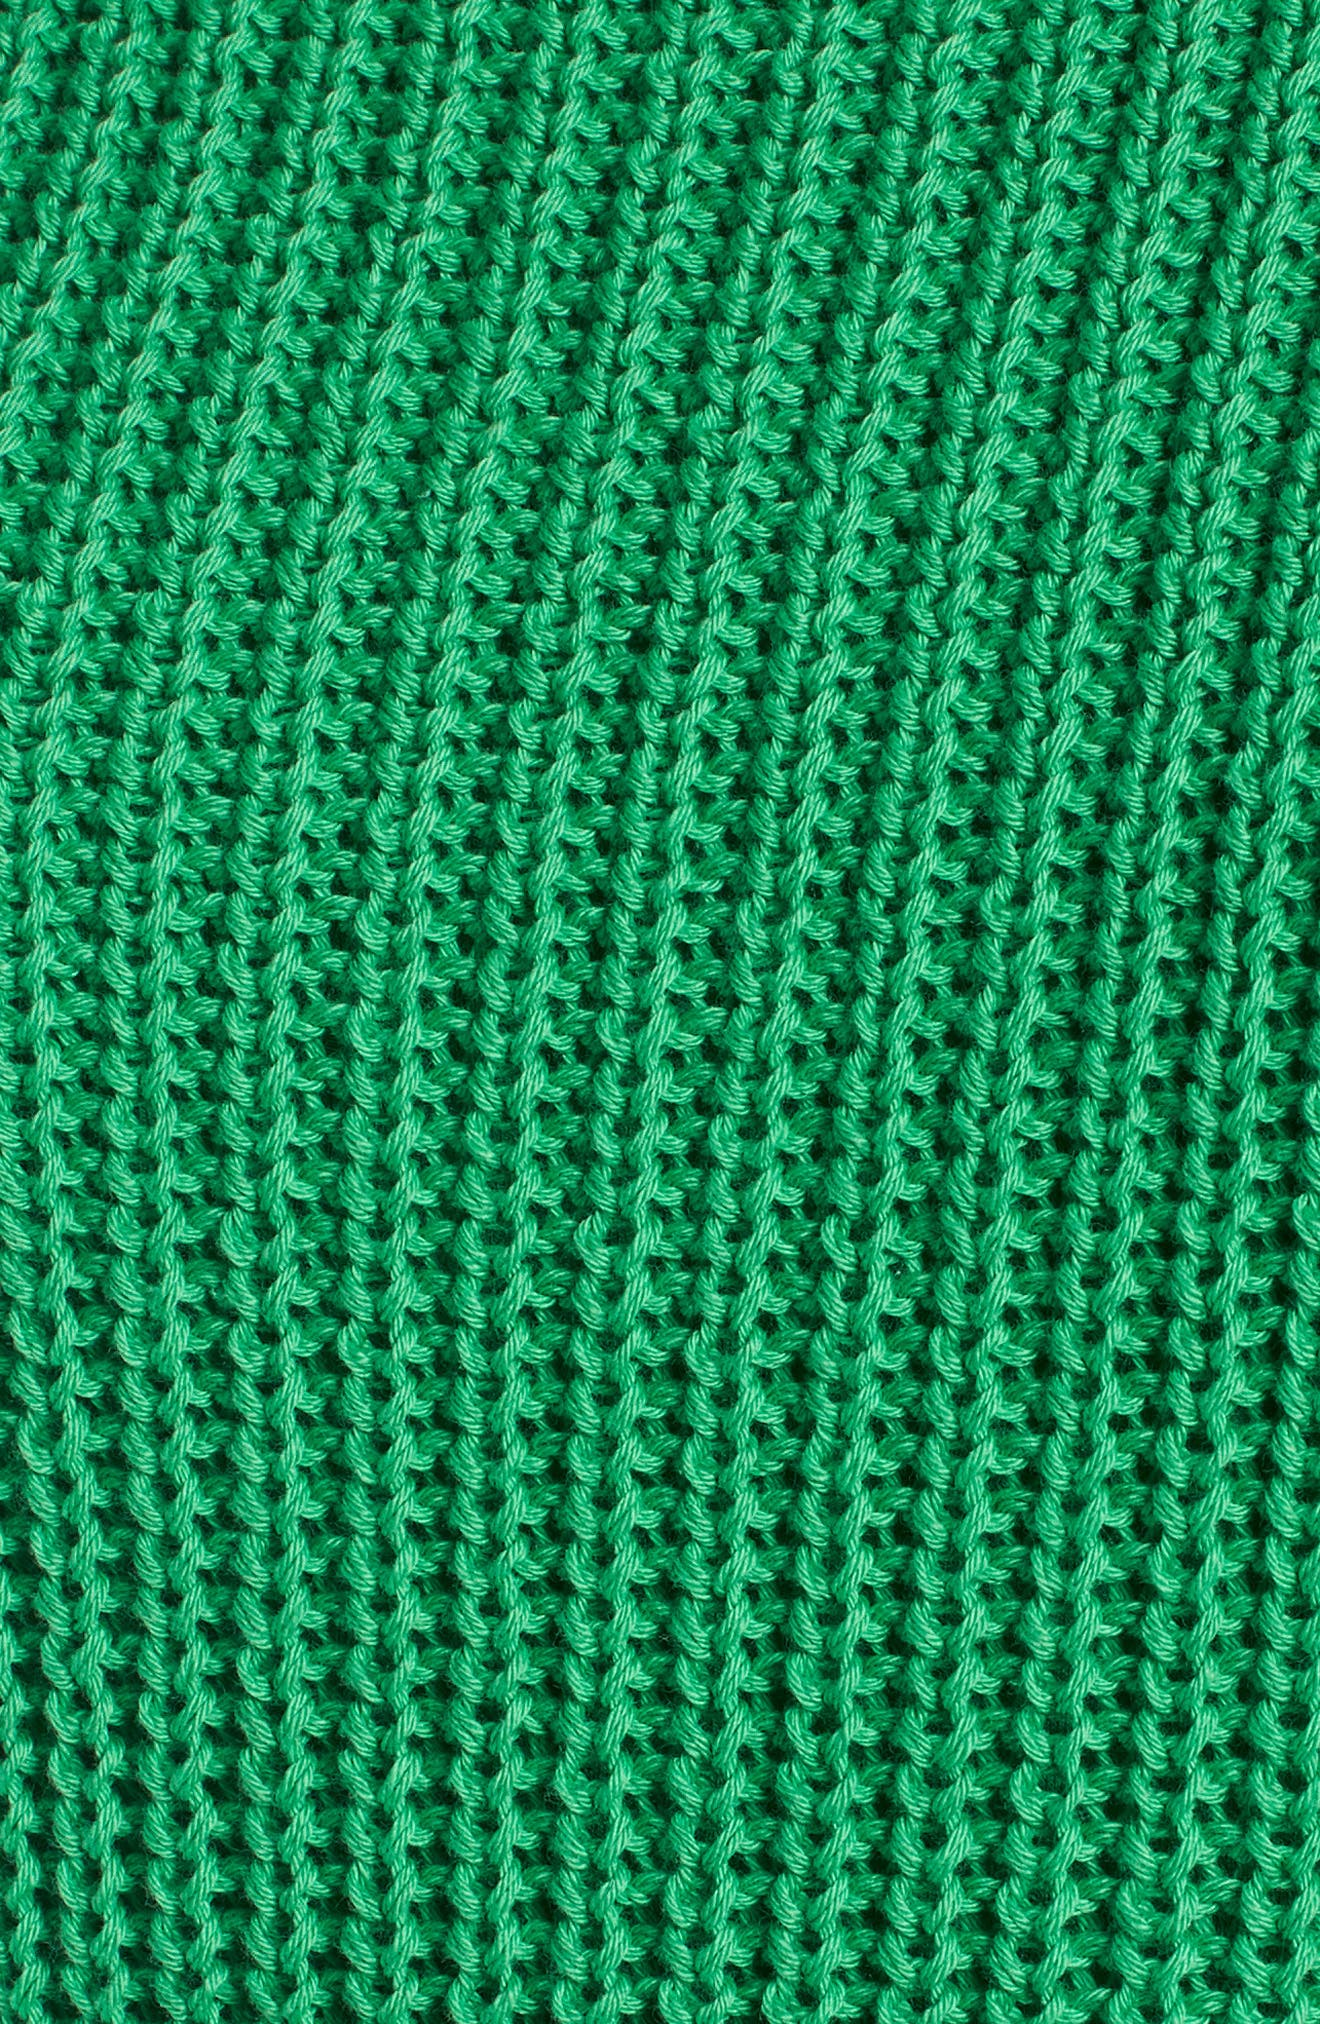 Shaker Stitch Cotton Sweater,                             Alternate thumbnail 5, color,                             330